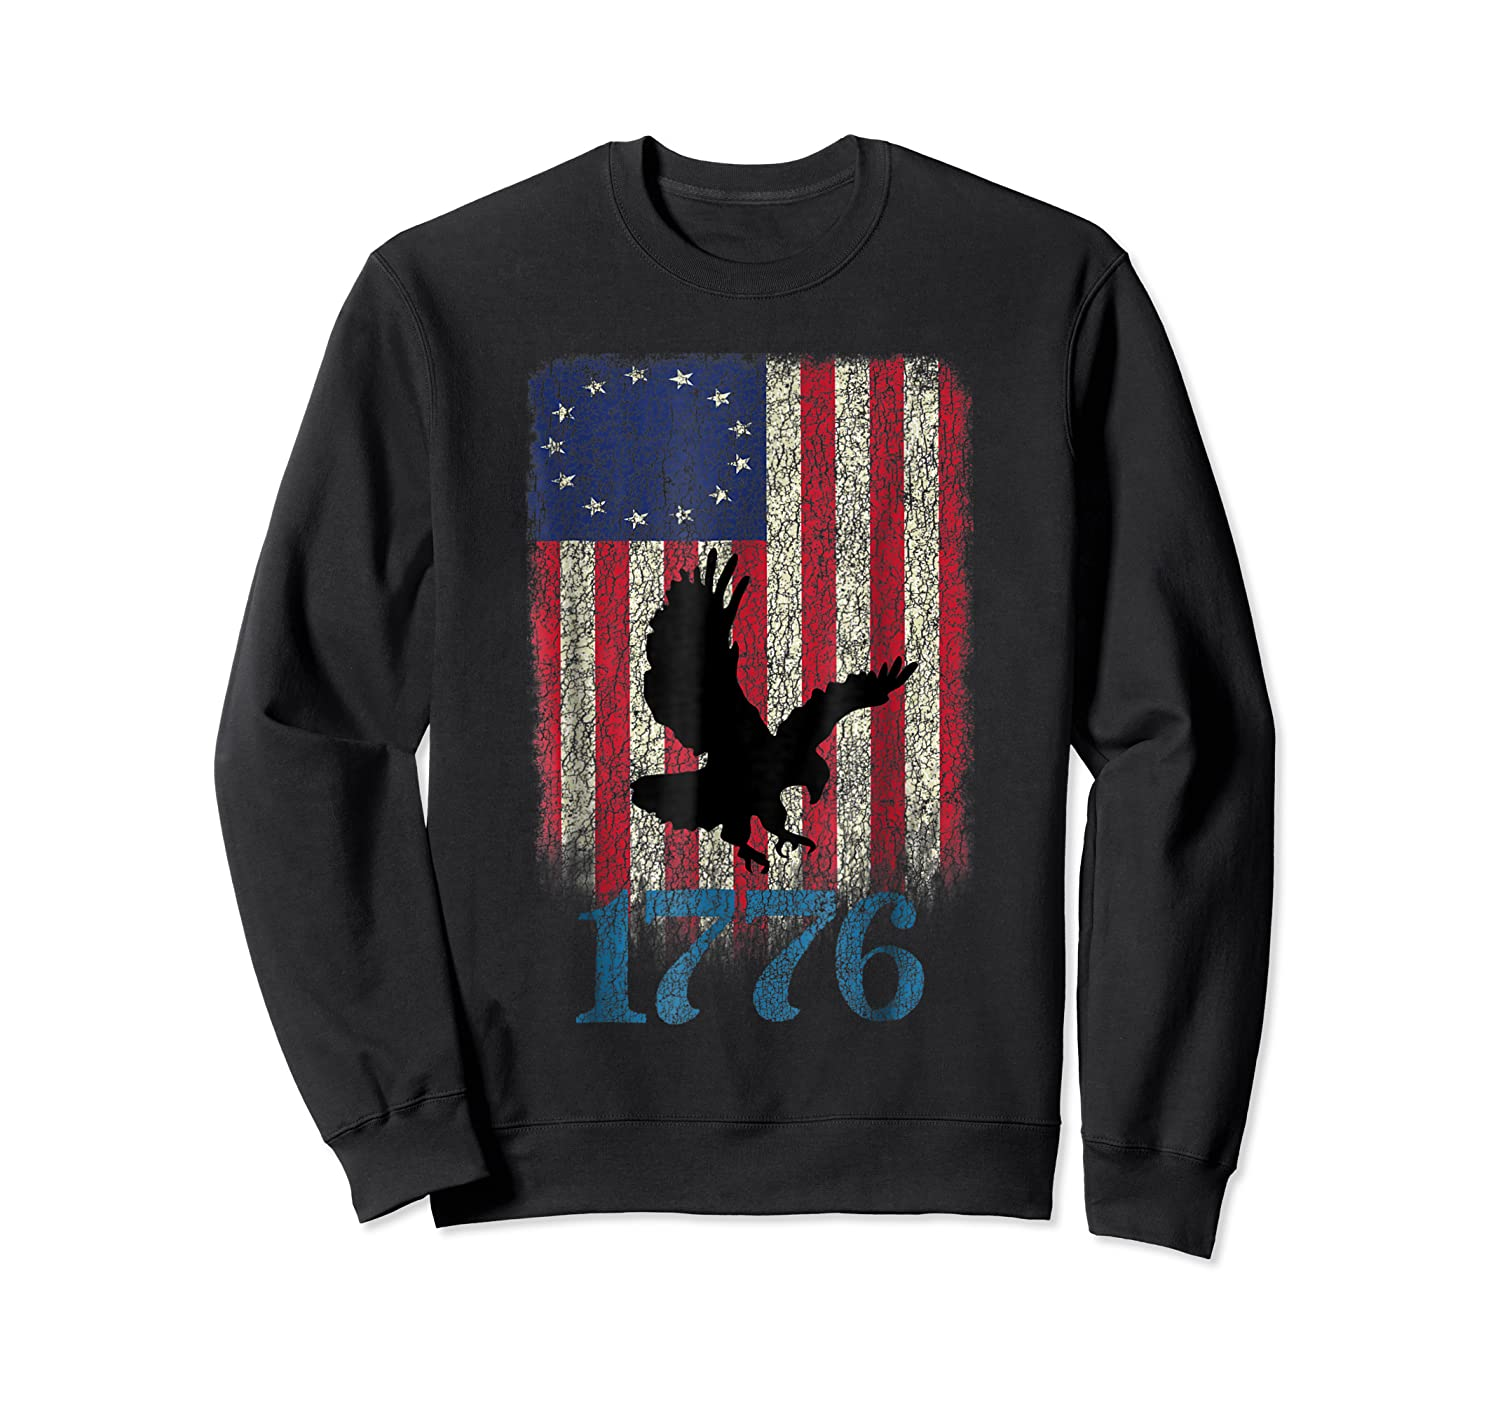 Betsy Ross Shirt 4th Of July American Flag Tshirt 1776 Eagle Crewneck Sweater